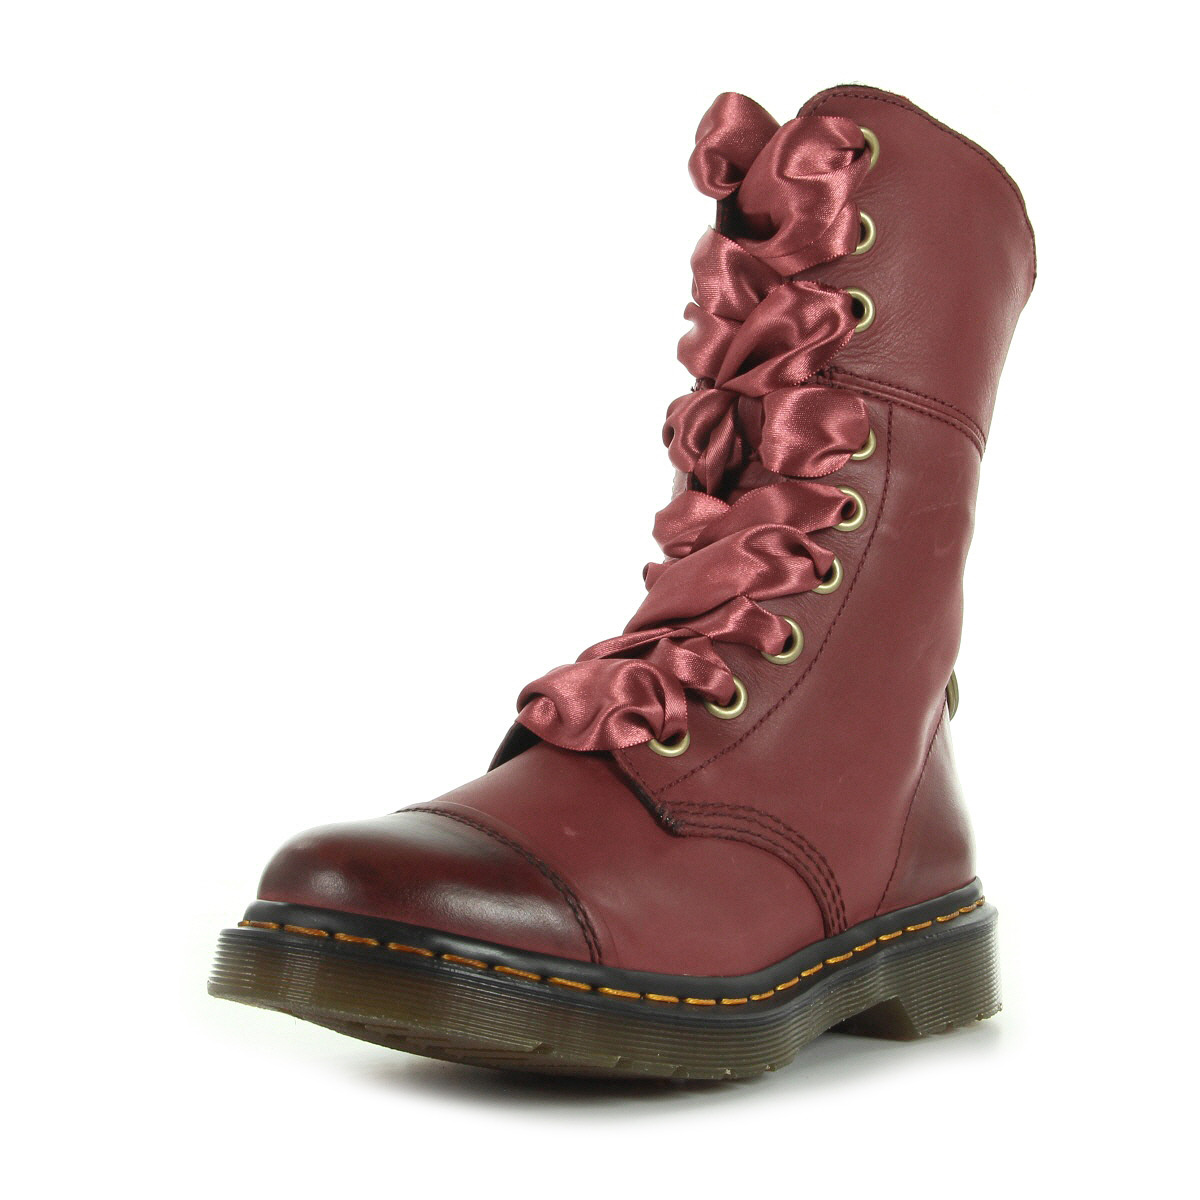 bottes doc martens bordeaux. Black Bedroom Furniture Sets. Home Design Ideas